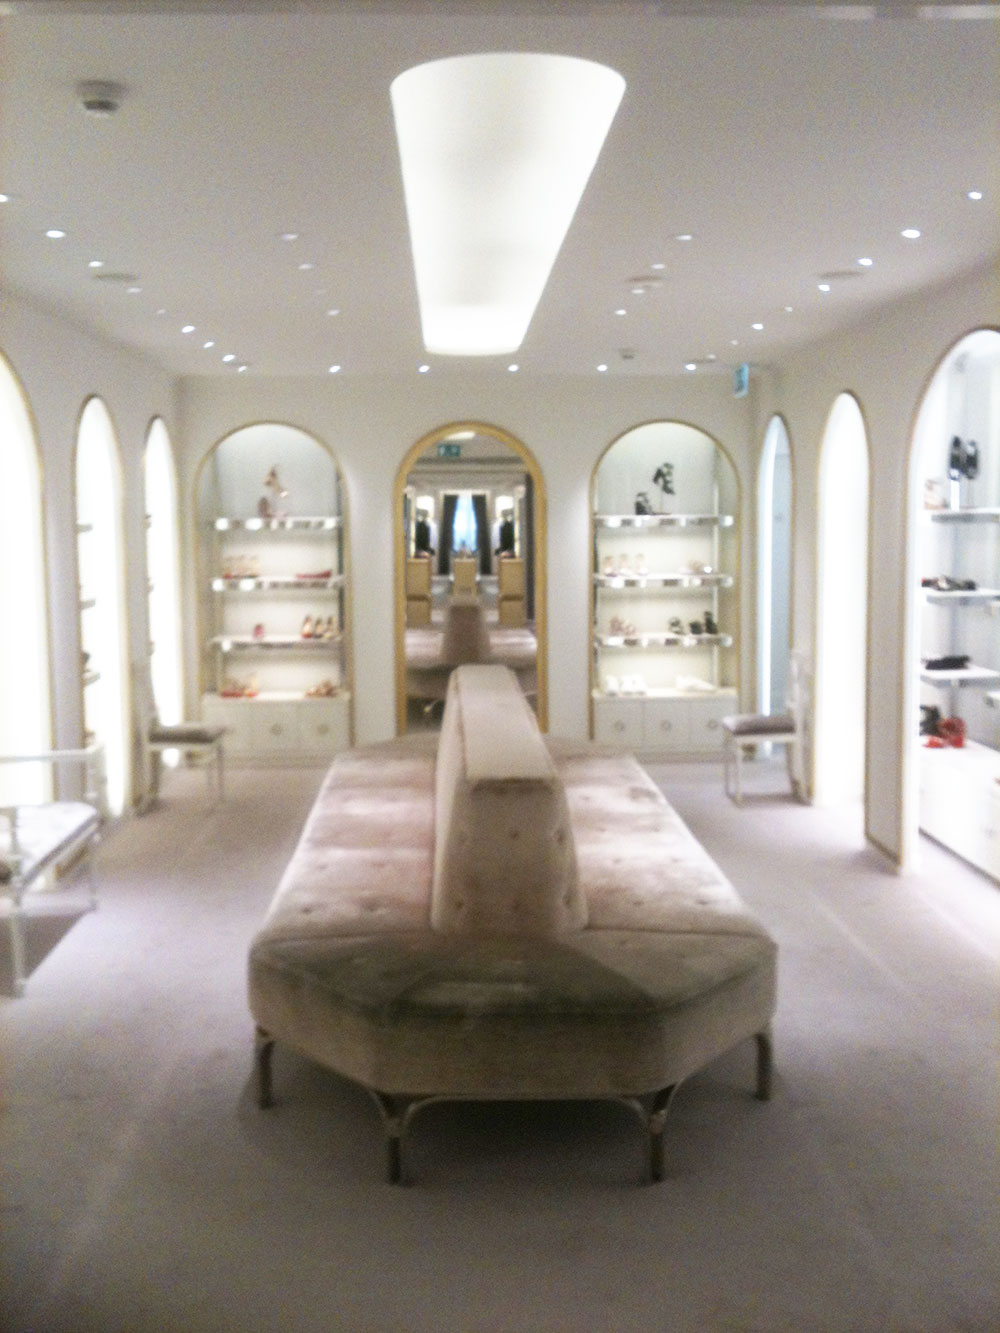 Day-Visit-Fashion-Parlour.jpg